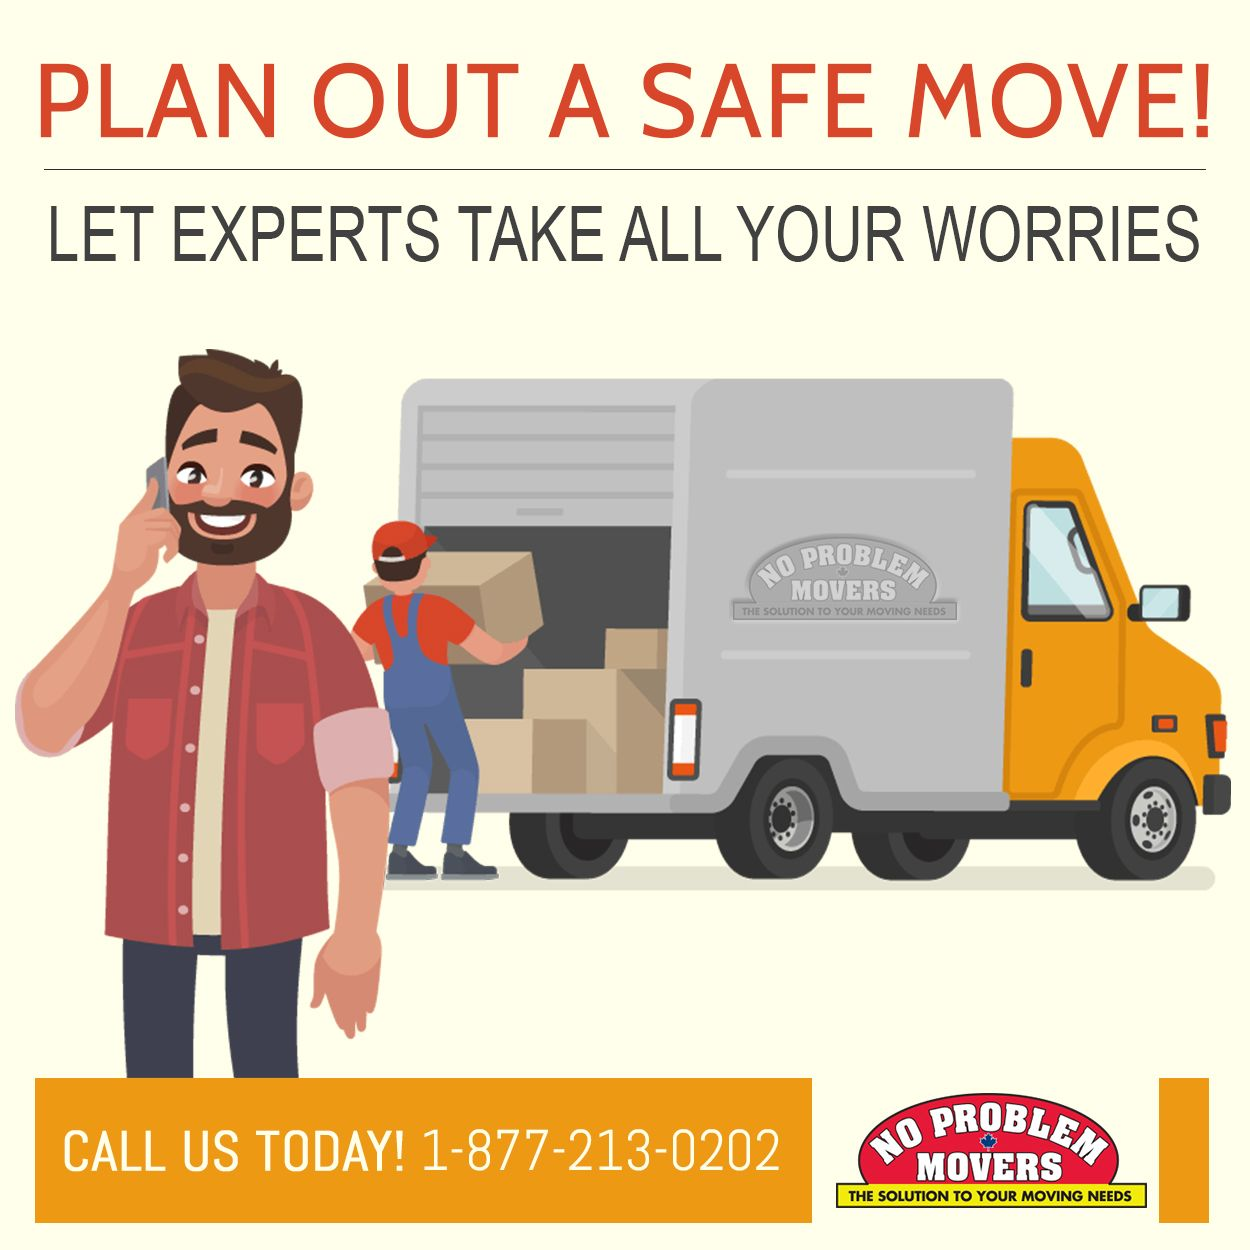 Plan out a safe move! Let experts take all your worries